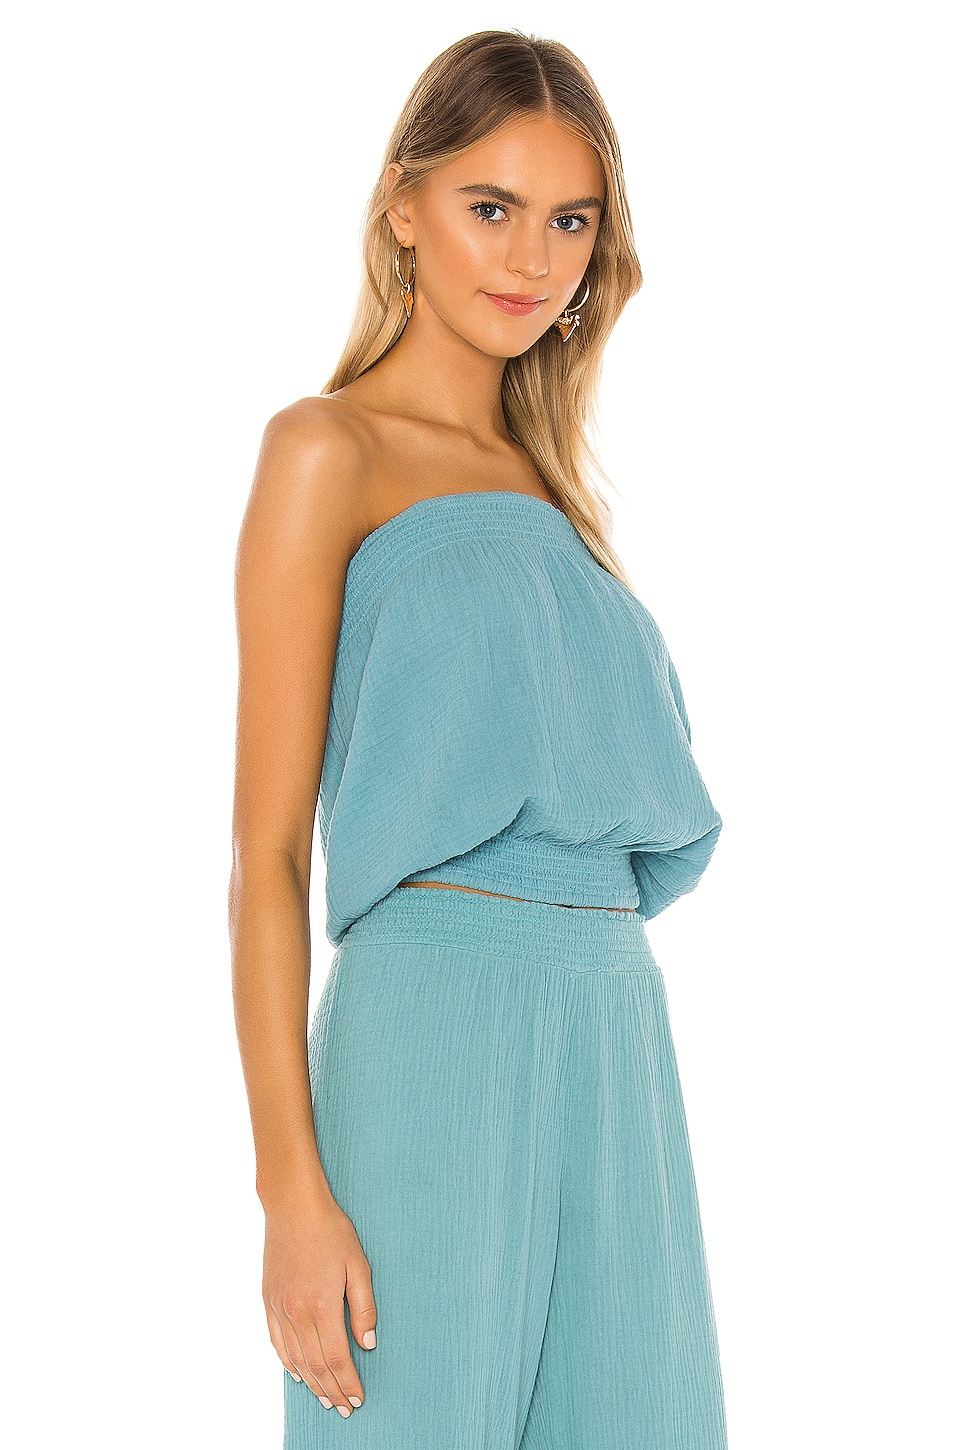 Beach Gauze Strapless Top, view 2, click to view large image.